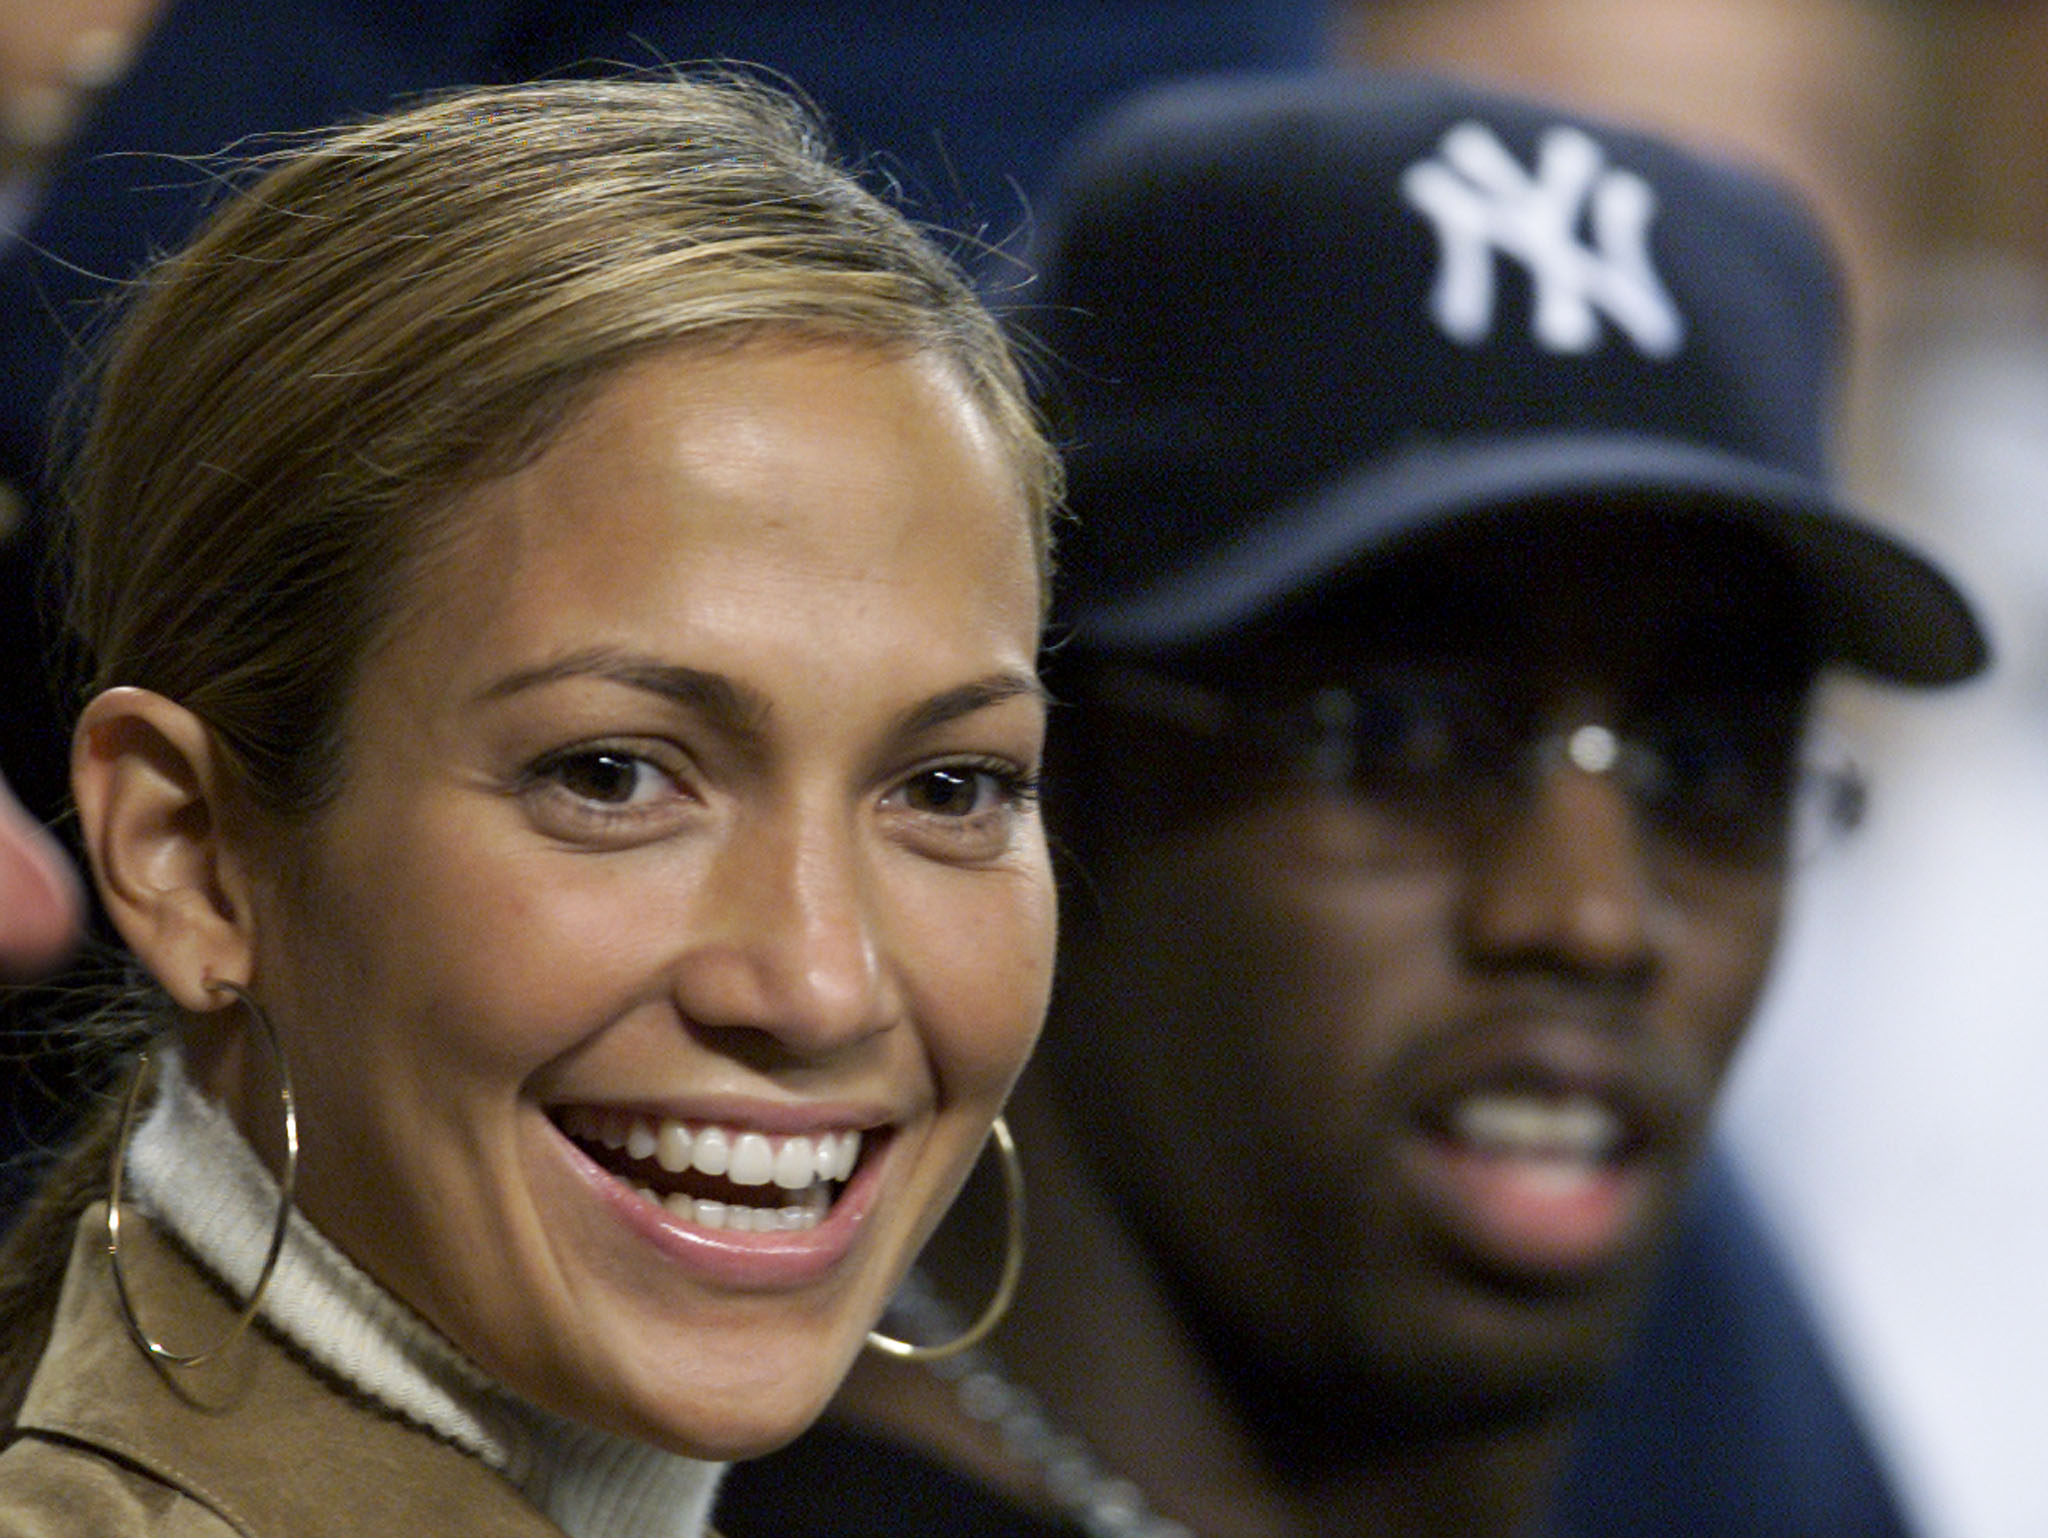 J.LO & Diddy, photo courtesy of REUTERS/Gary Hershorn /Landov